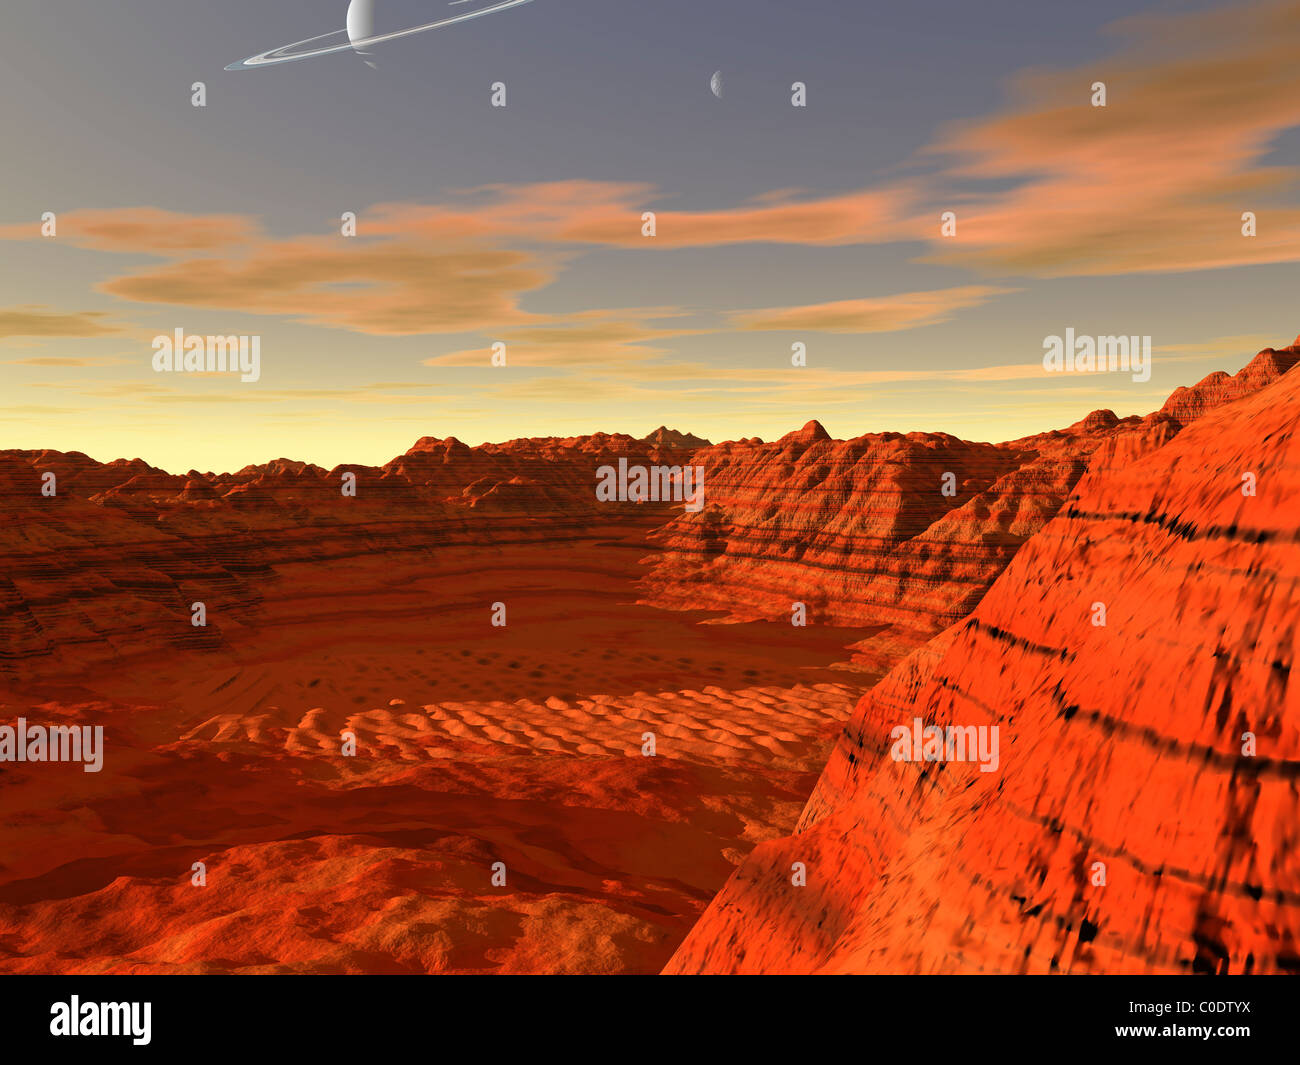 Artist's concept of an earth-like planet. - Stock Image